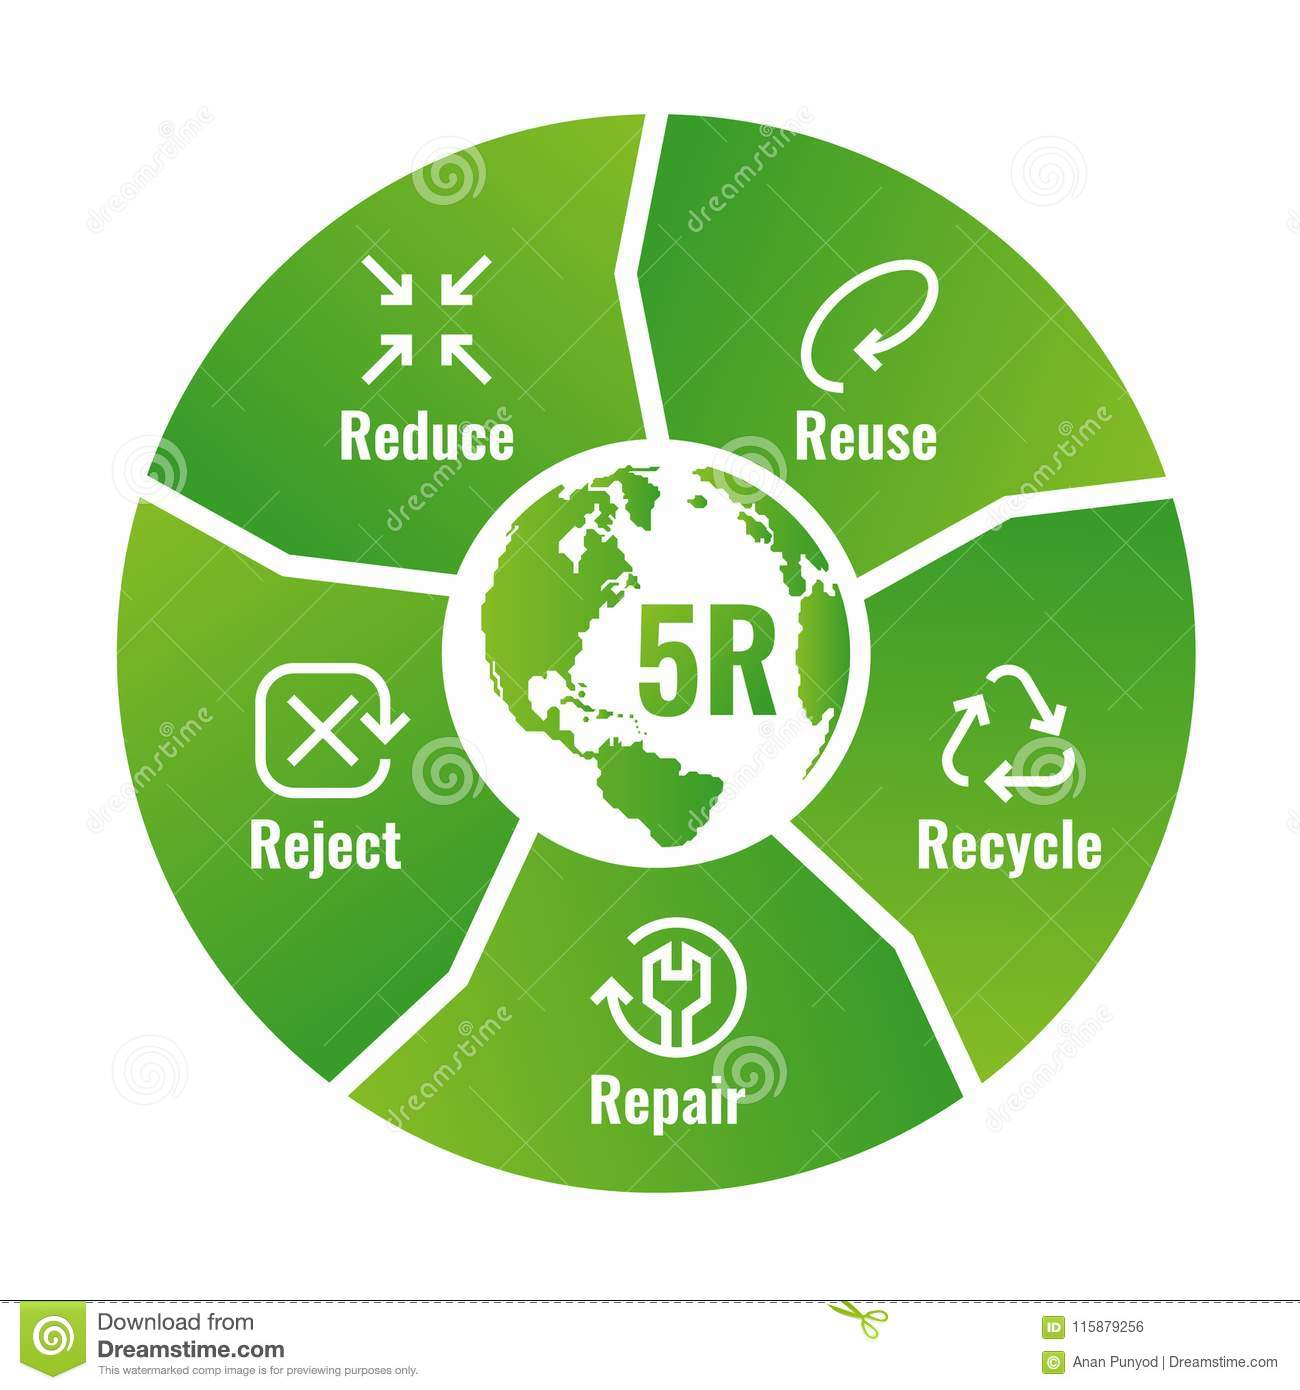 5r Chart Reduce Reuse Recycle Repair Reject With Icon Sign And Z Wave Block Diagram Text